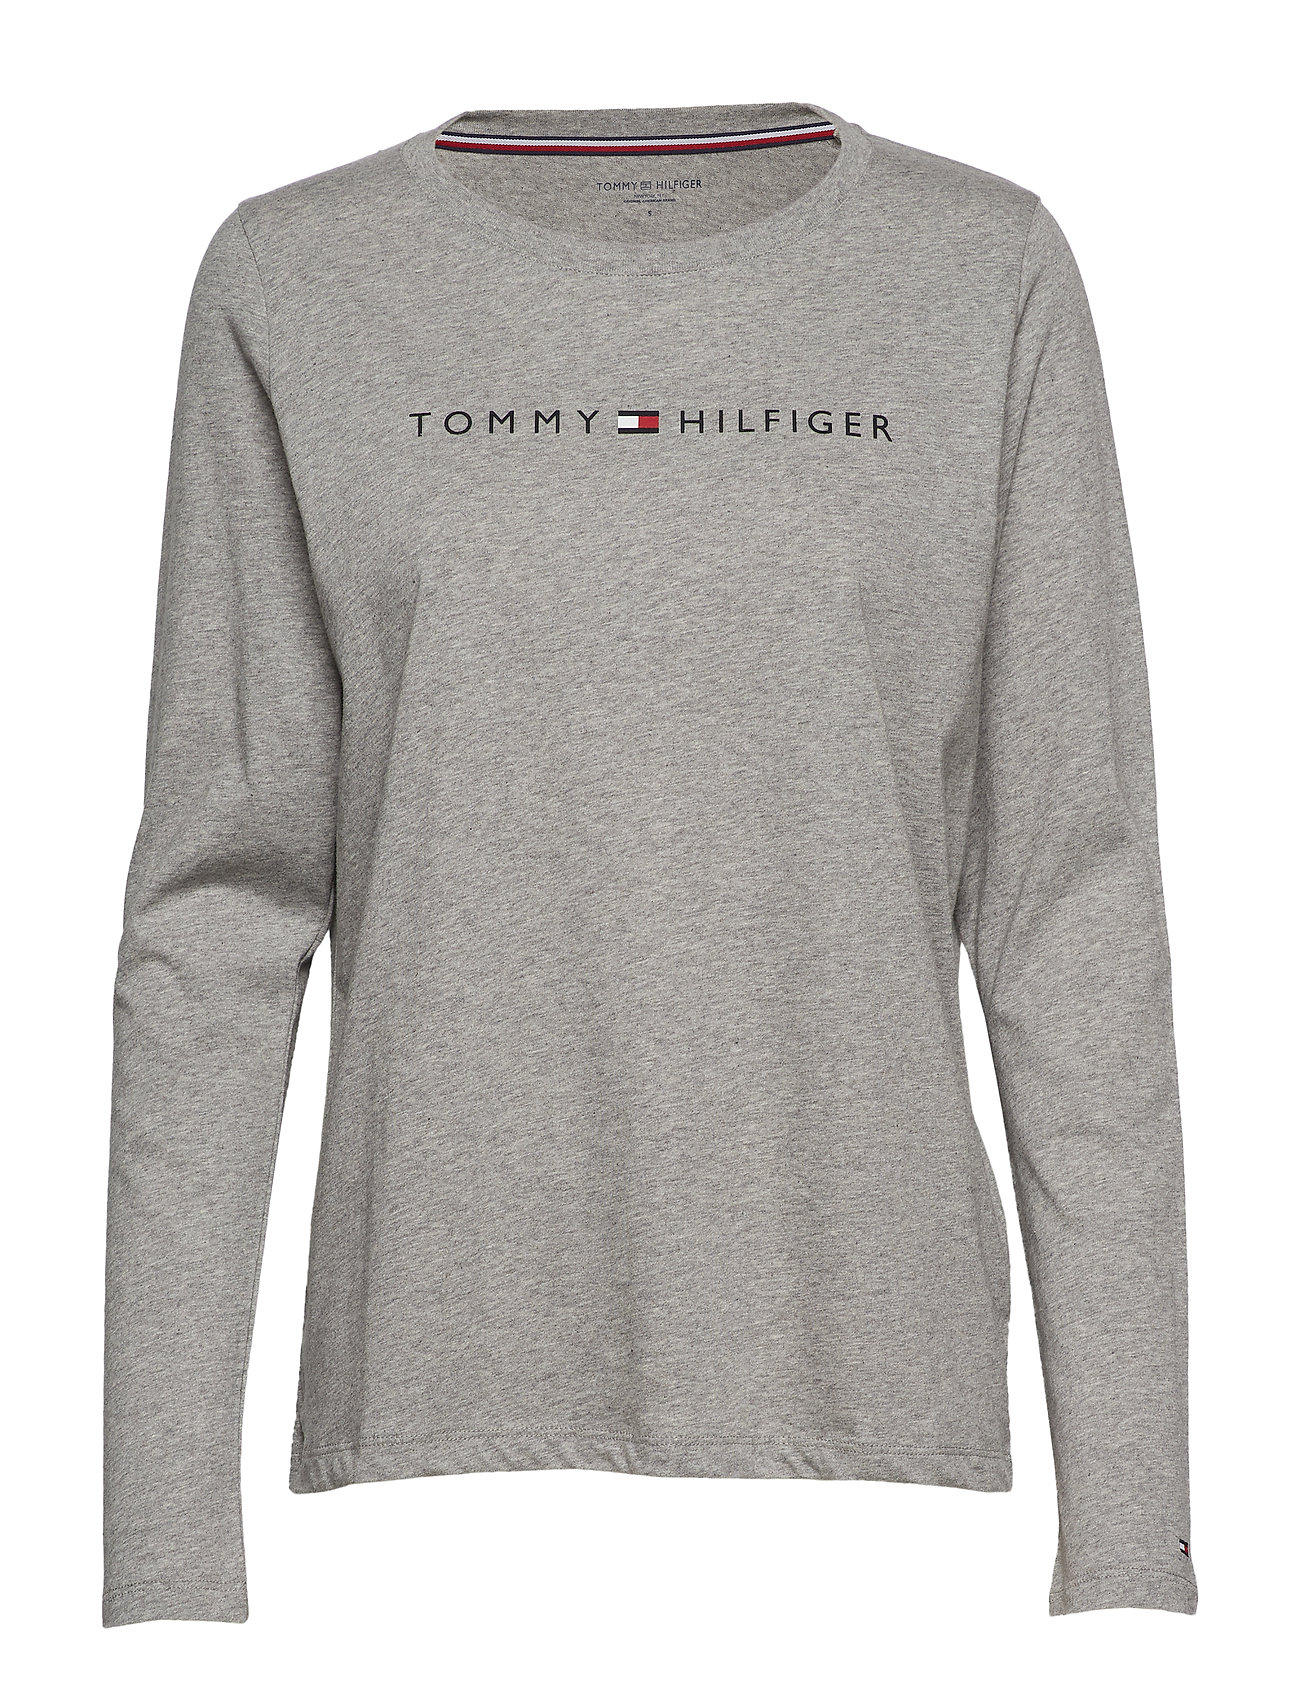 Tommy Hilfiger CN TEE LS LOGO - GREY HEATHER